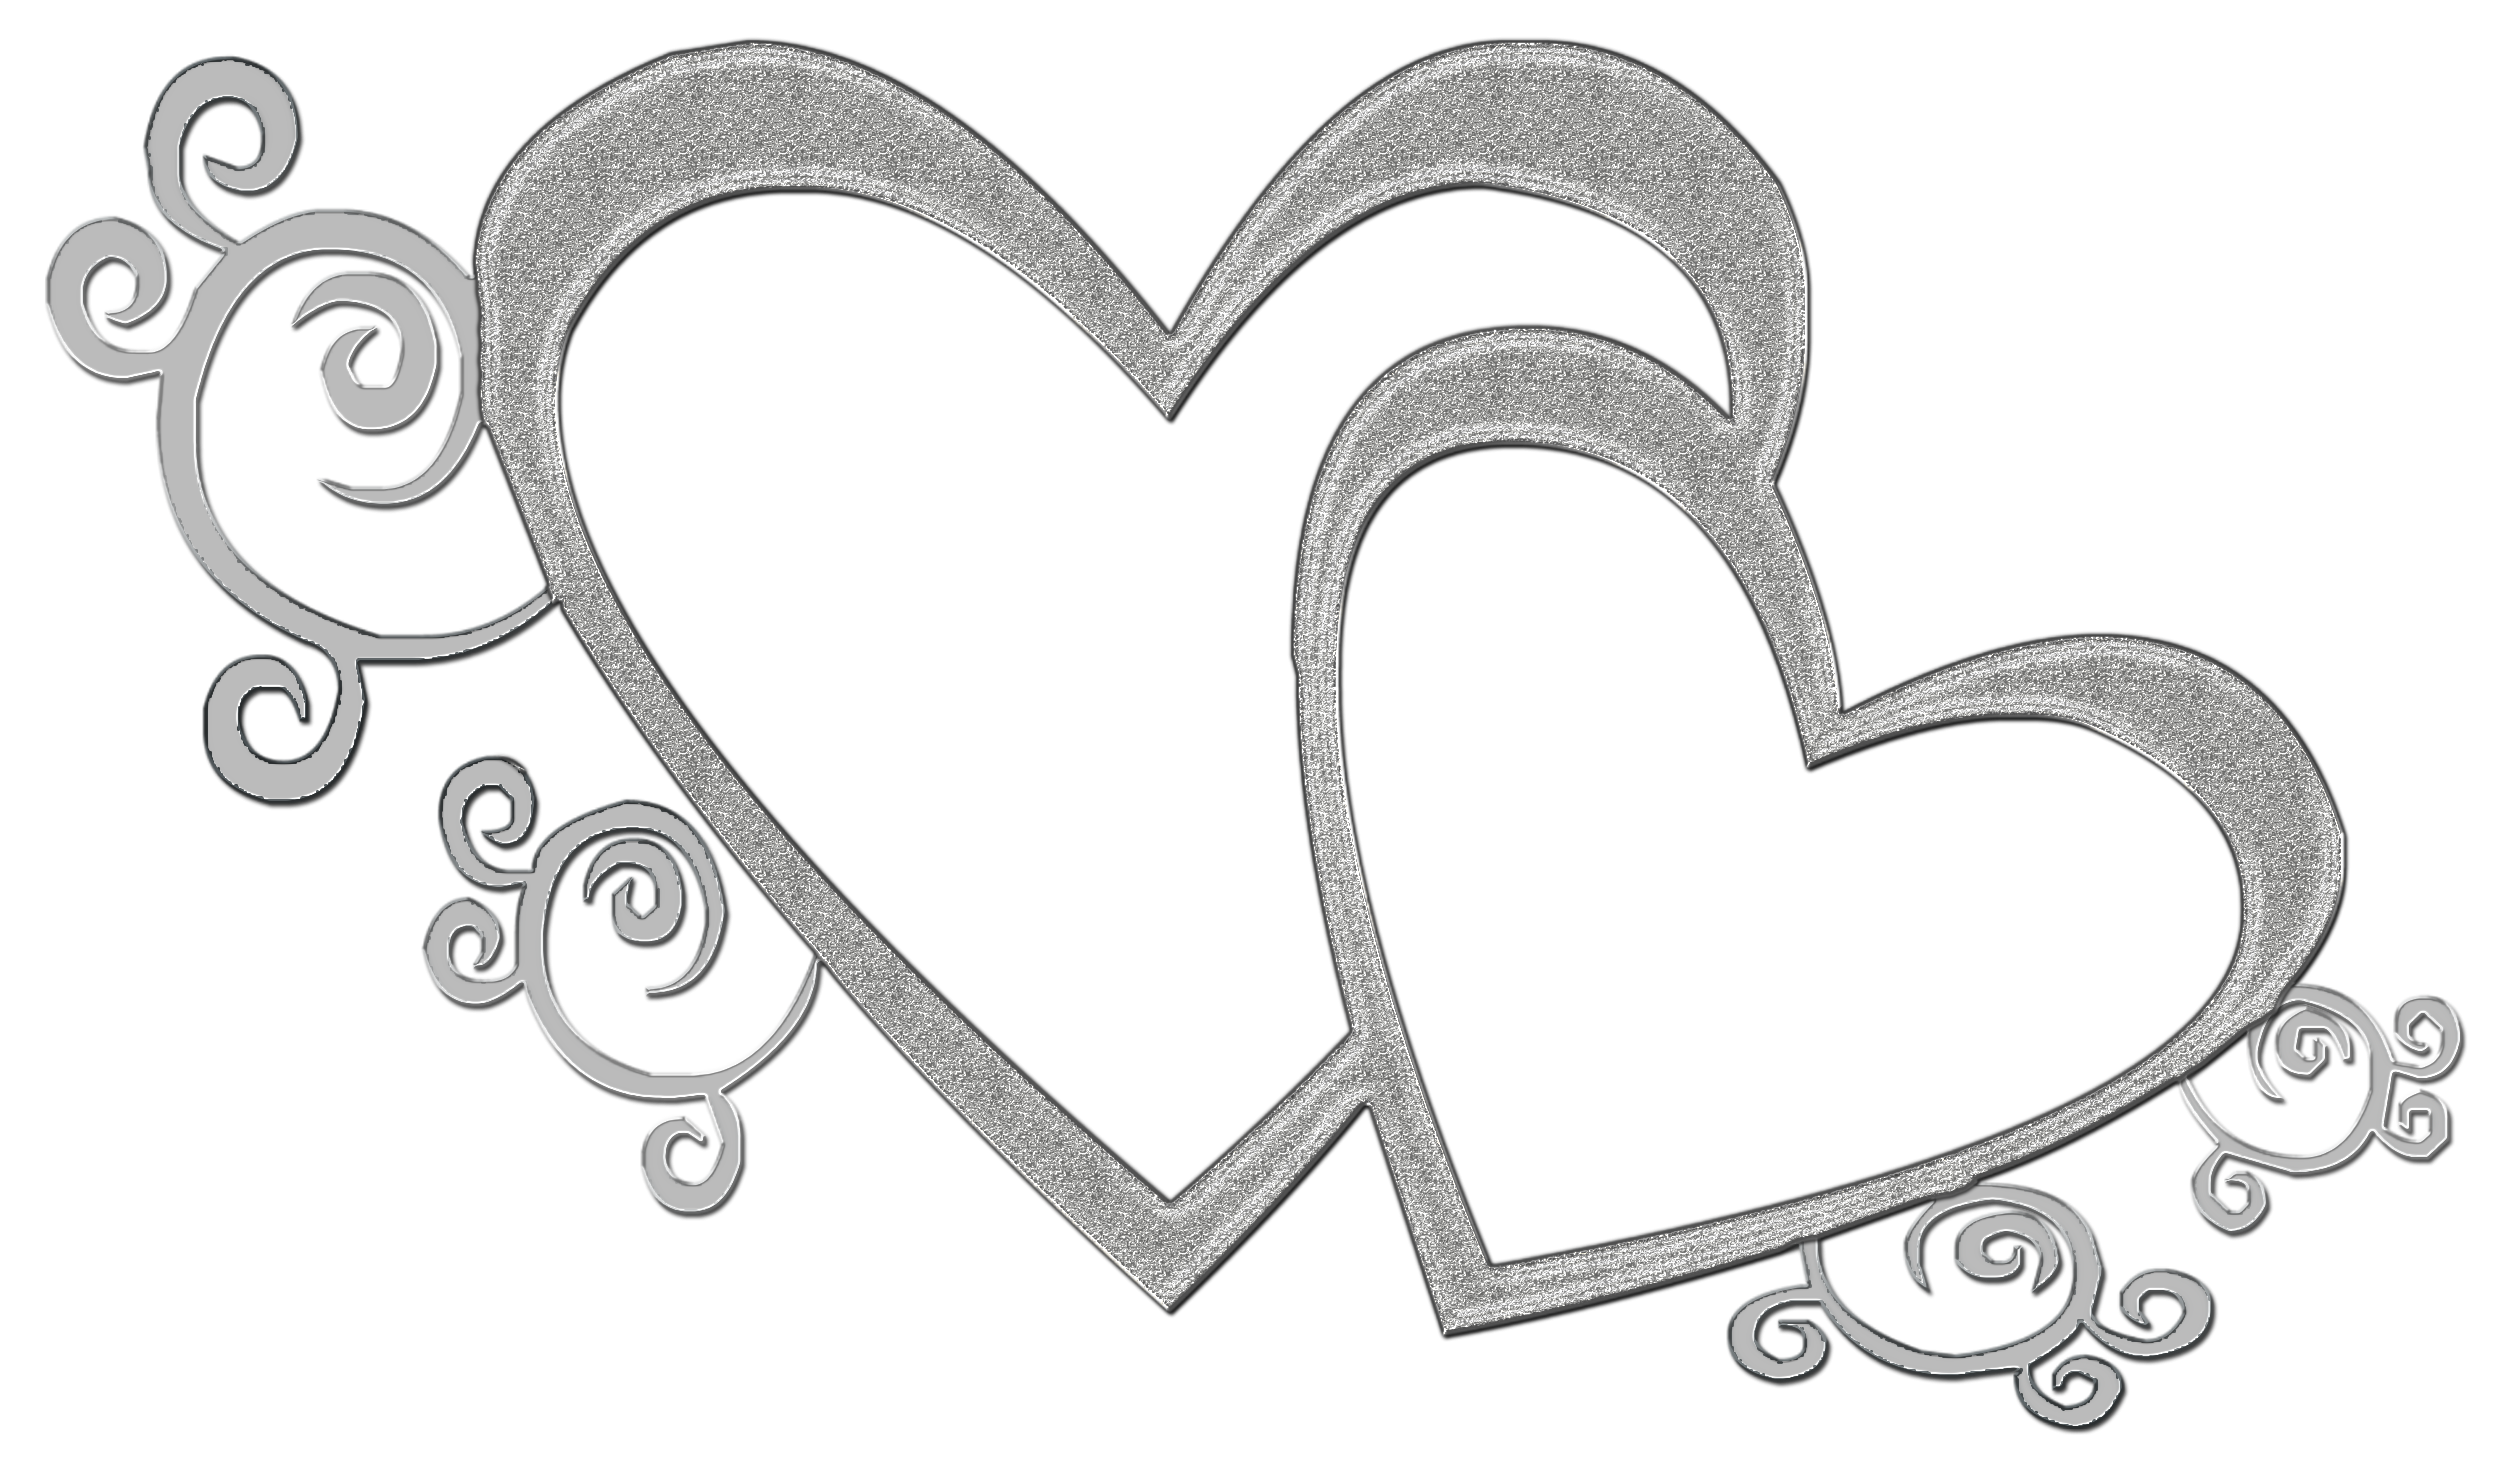 Double heart clipart black and white banner royalty free library Double Heart Clipart Black And White Transparent | Letters Format banner royalty free library